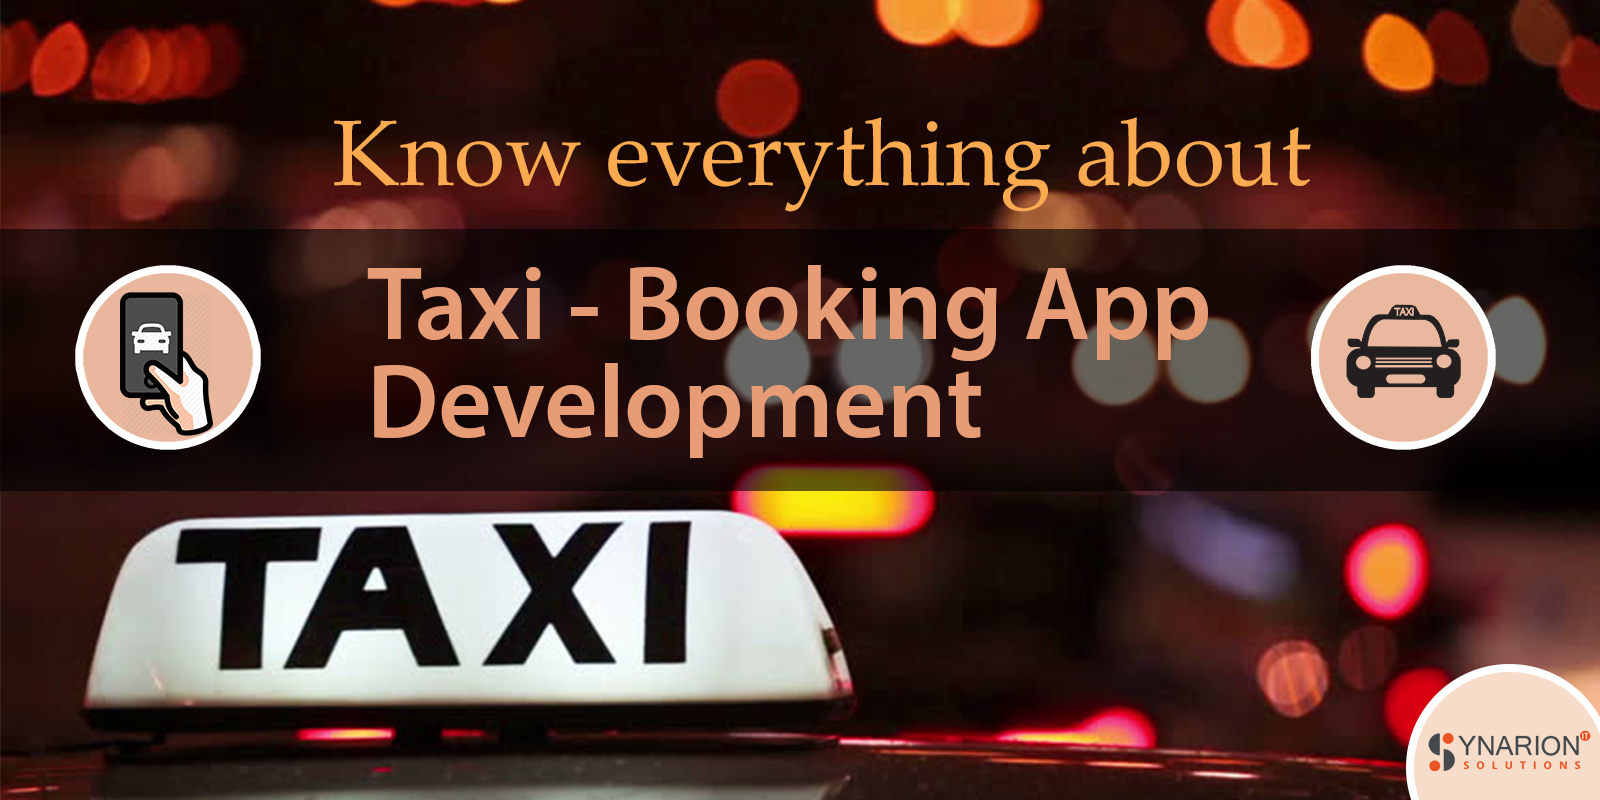 Make Your Own Custom On Demand Taxi App development Solution Like Ola, Uber, Lyft?